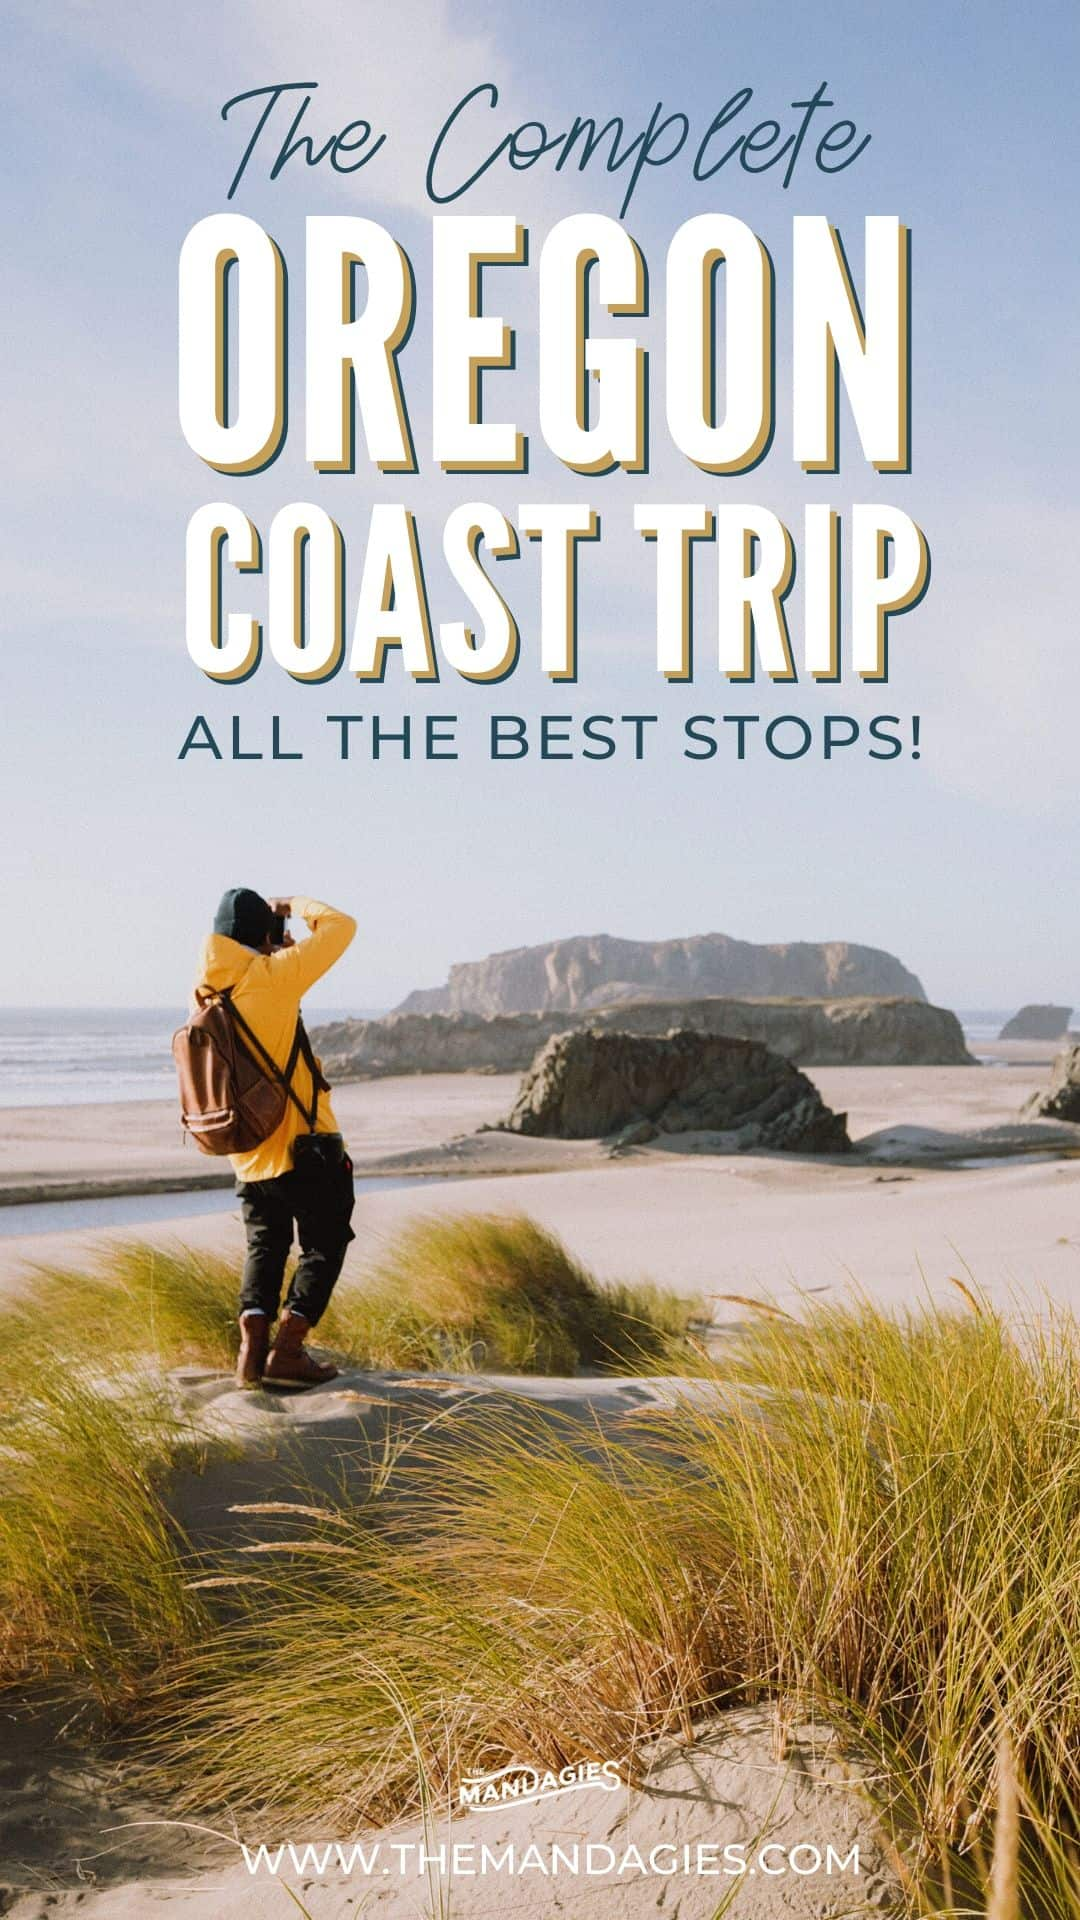 Driving the Oregon Coast and looking for the best places to see? We're sharing the best places to visit on the Oregon Coast, including everything from beaches, photo spots, hiking trails, and favorite towns on the Oregon Coast! Save this post for your next epic trip to the Pacific Northwest! #Oregoncoast #Oregon #roadtrip #cannonbeach #PNW #pacificnorthwest #vacation #PacificNW #travel #photography #traveltips #themandagies